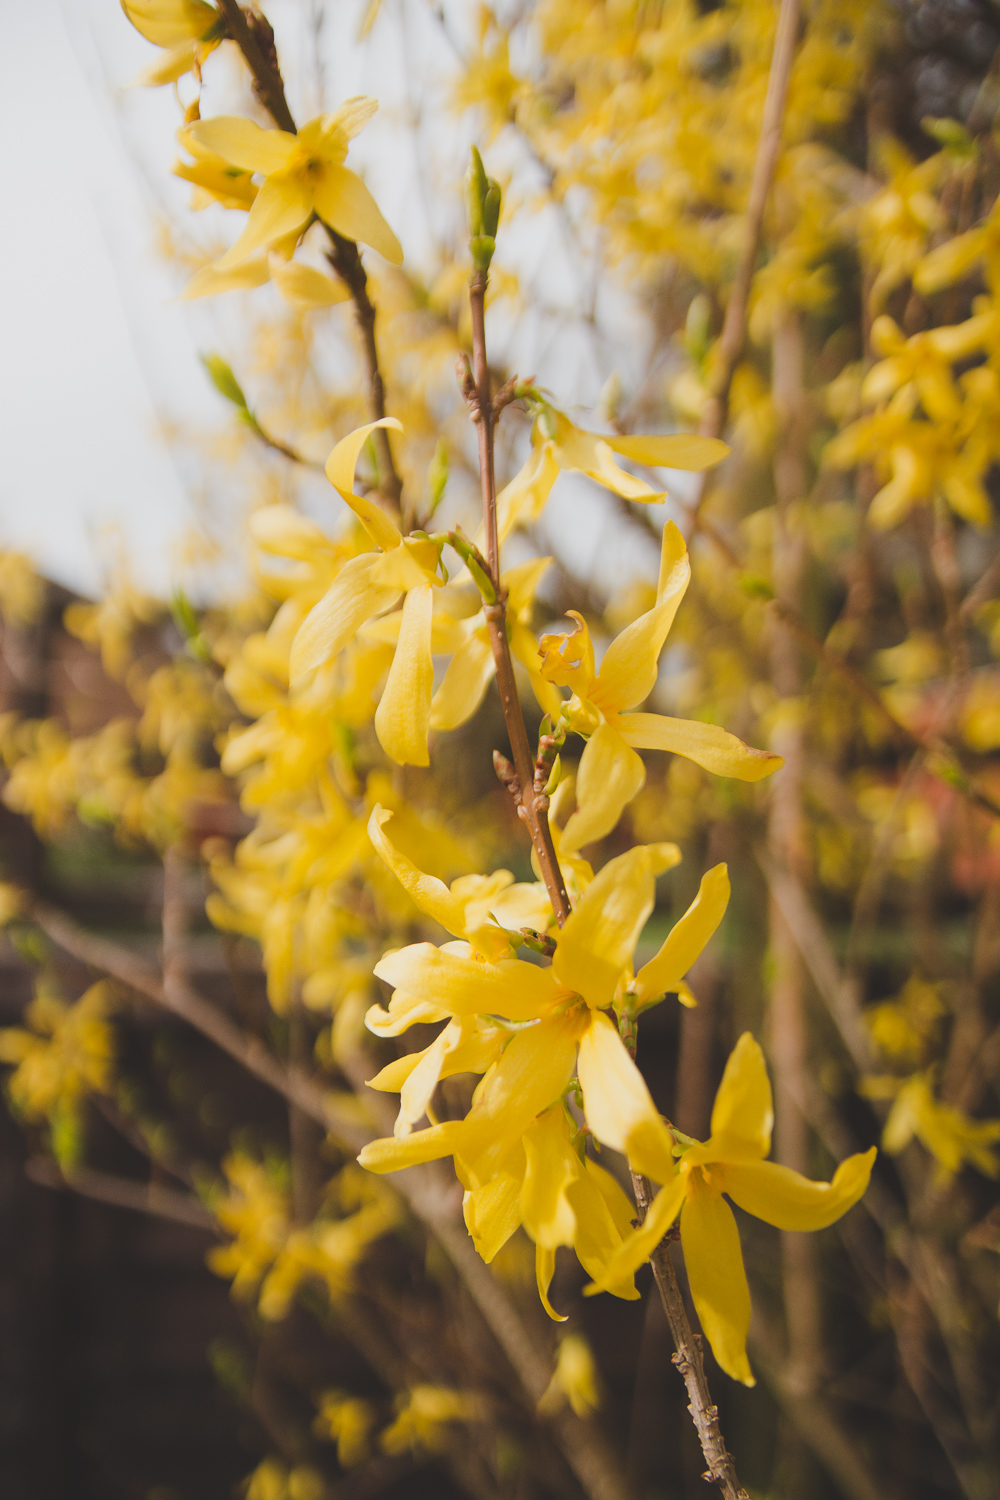 Garden Forsythia in the Spring